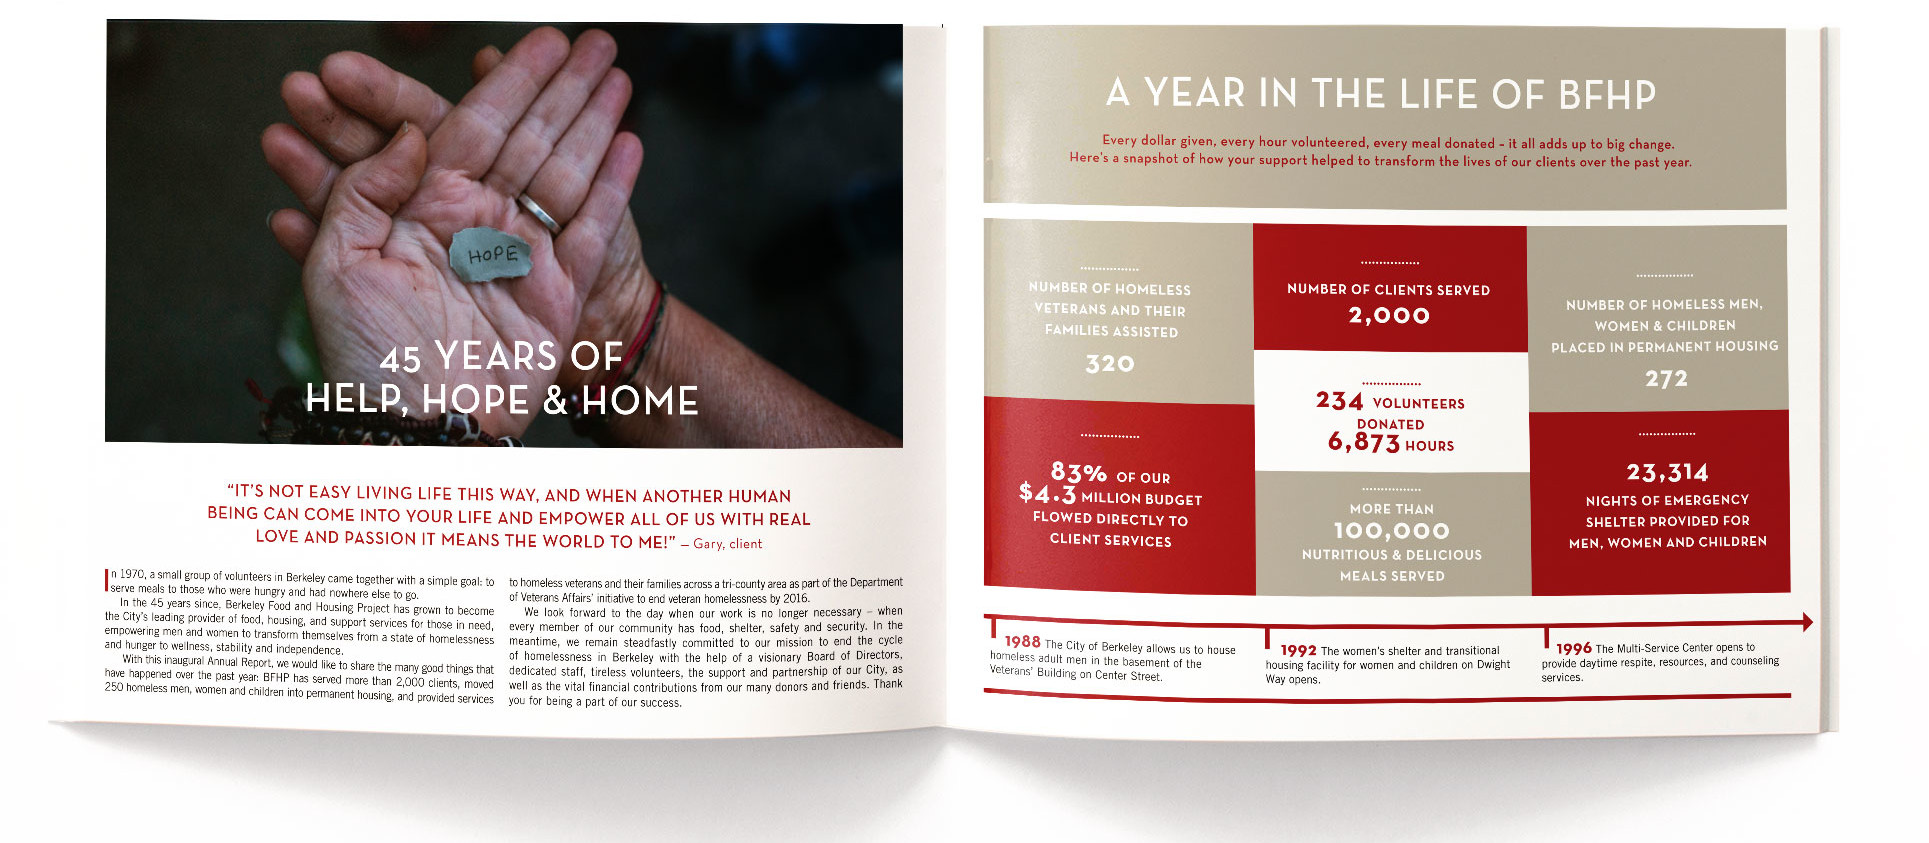 Annual Report design for Berkeley Food and Housing Project